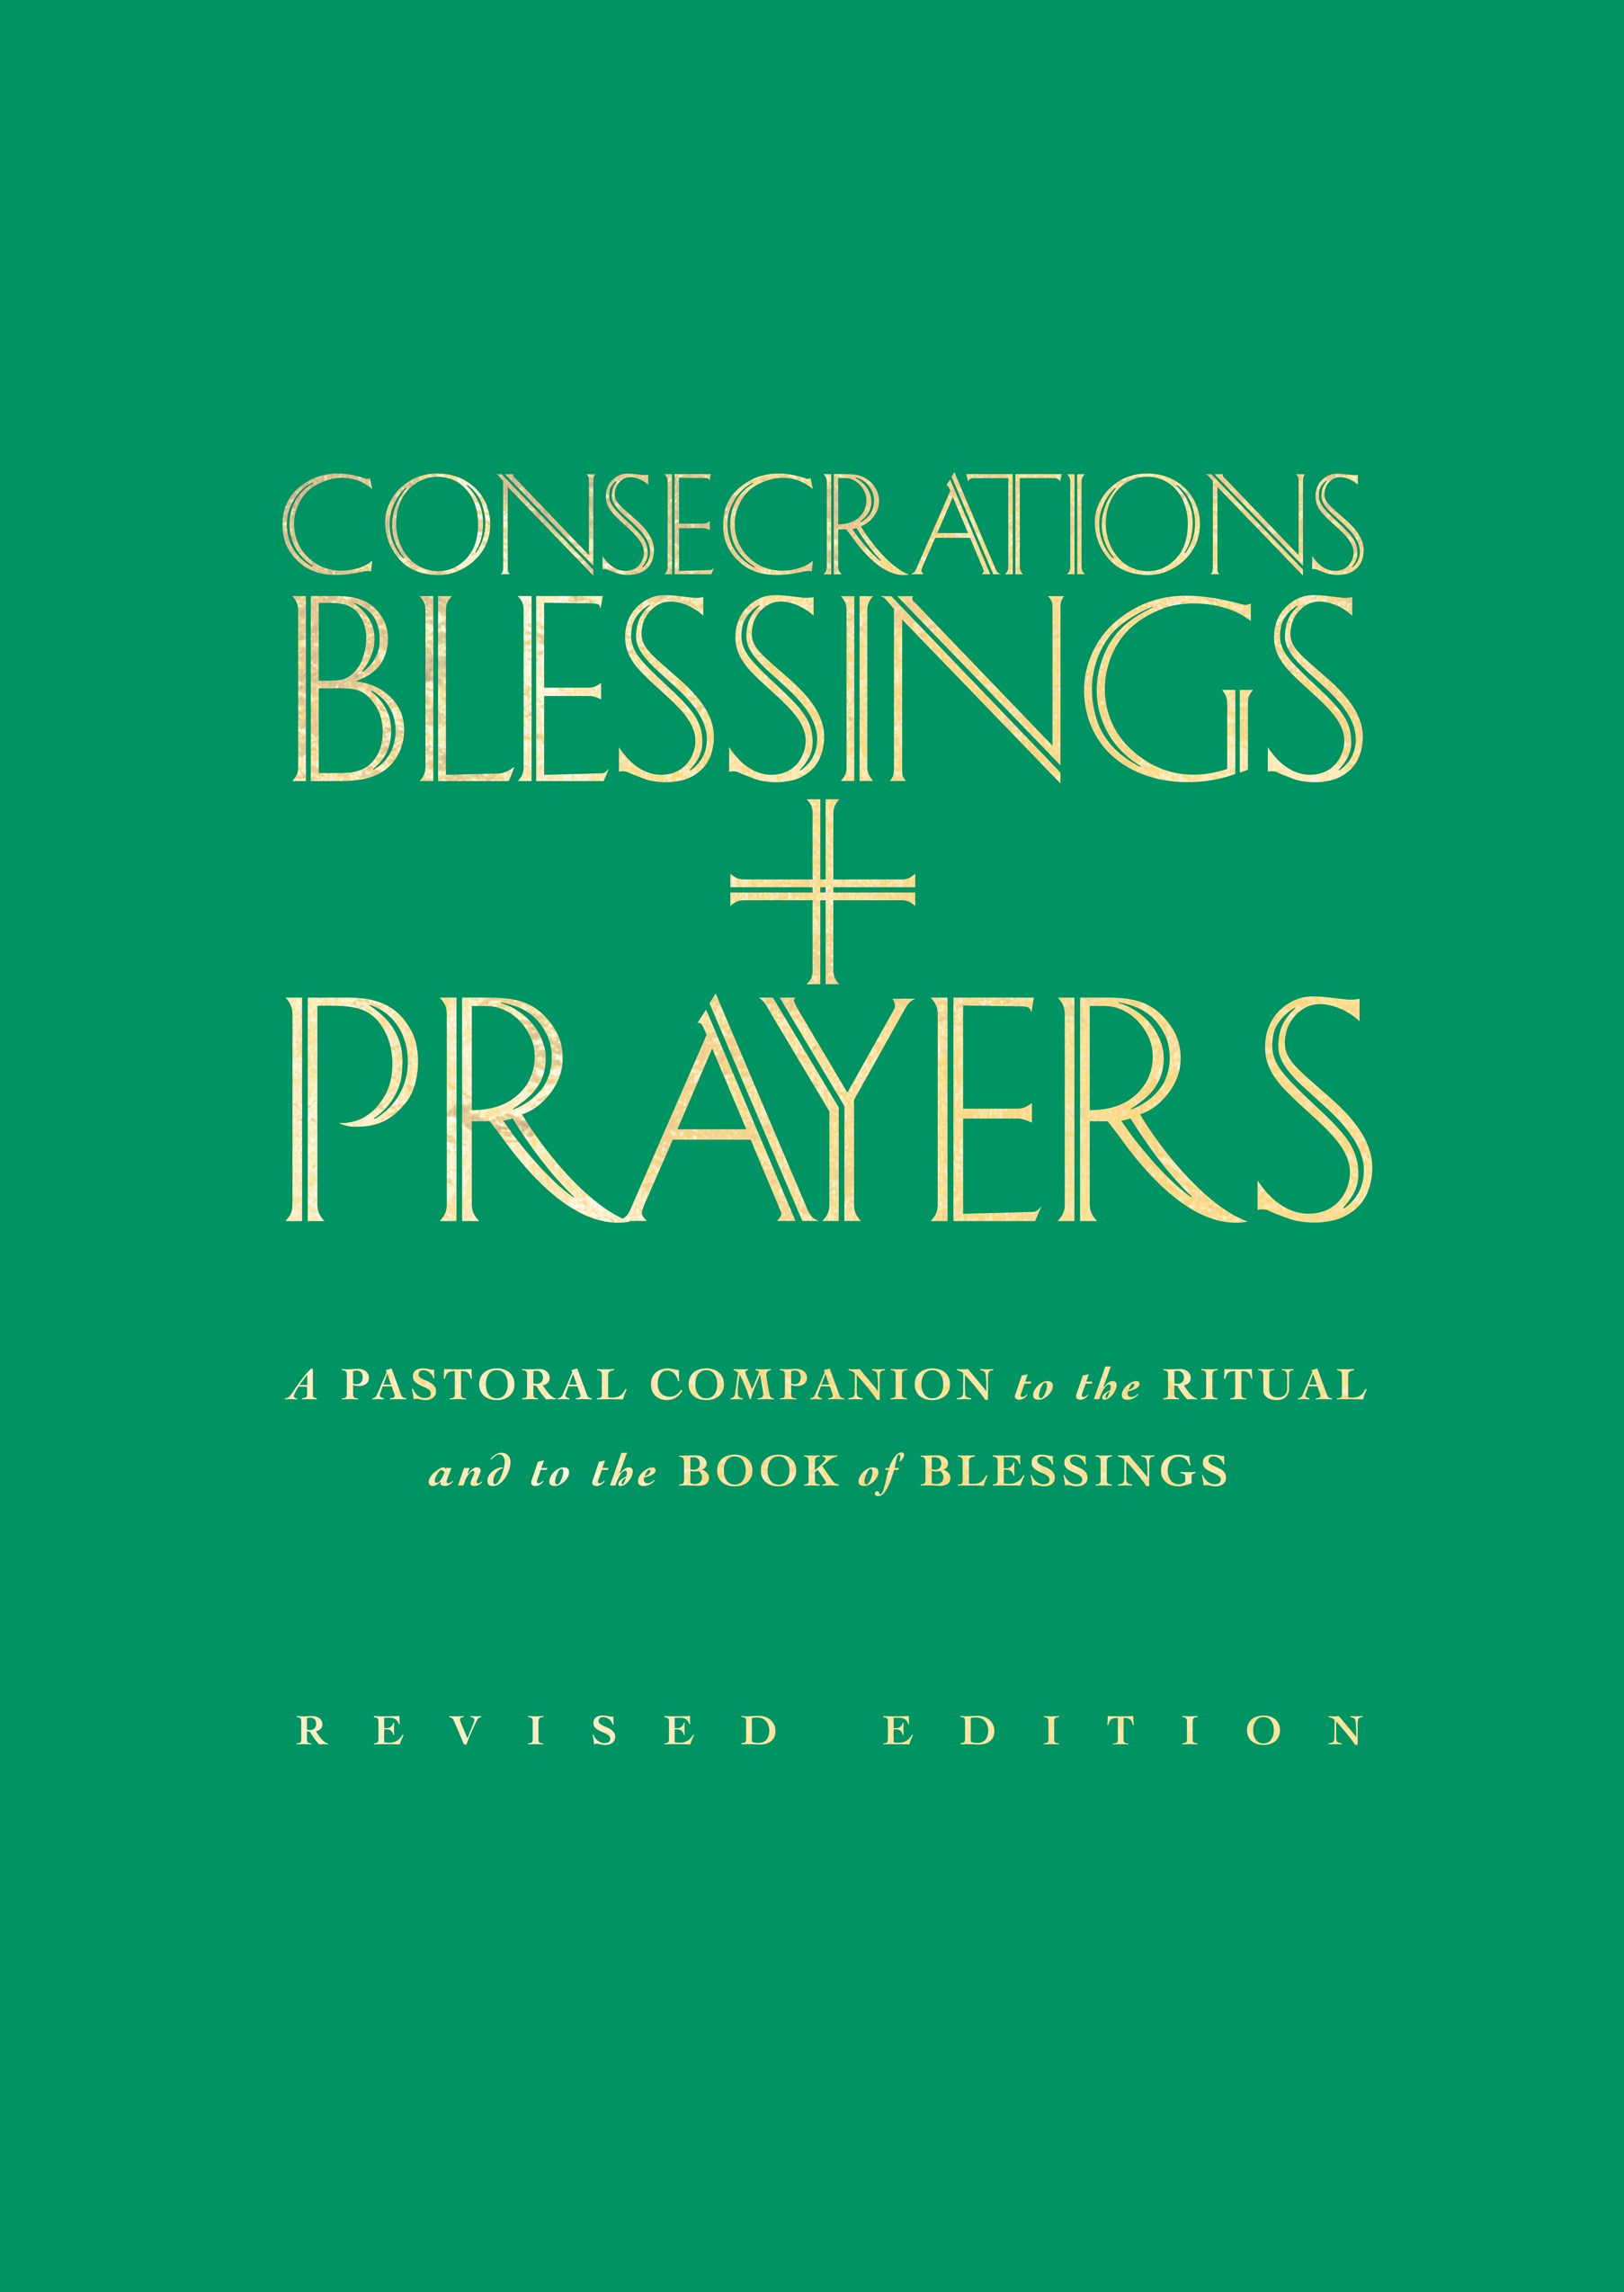 Consecrations, Blessings and Prayers by Sean Finnegan - Hardback